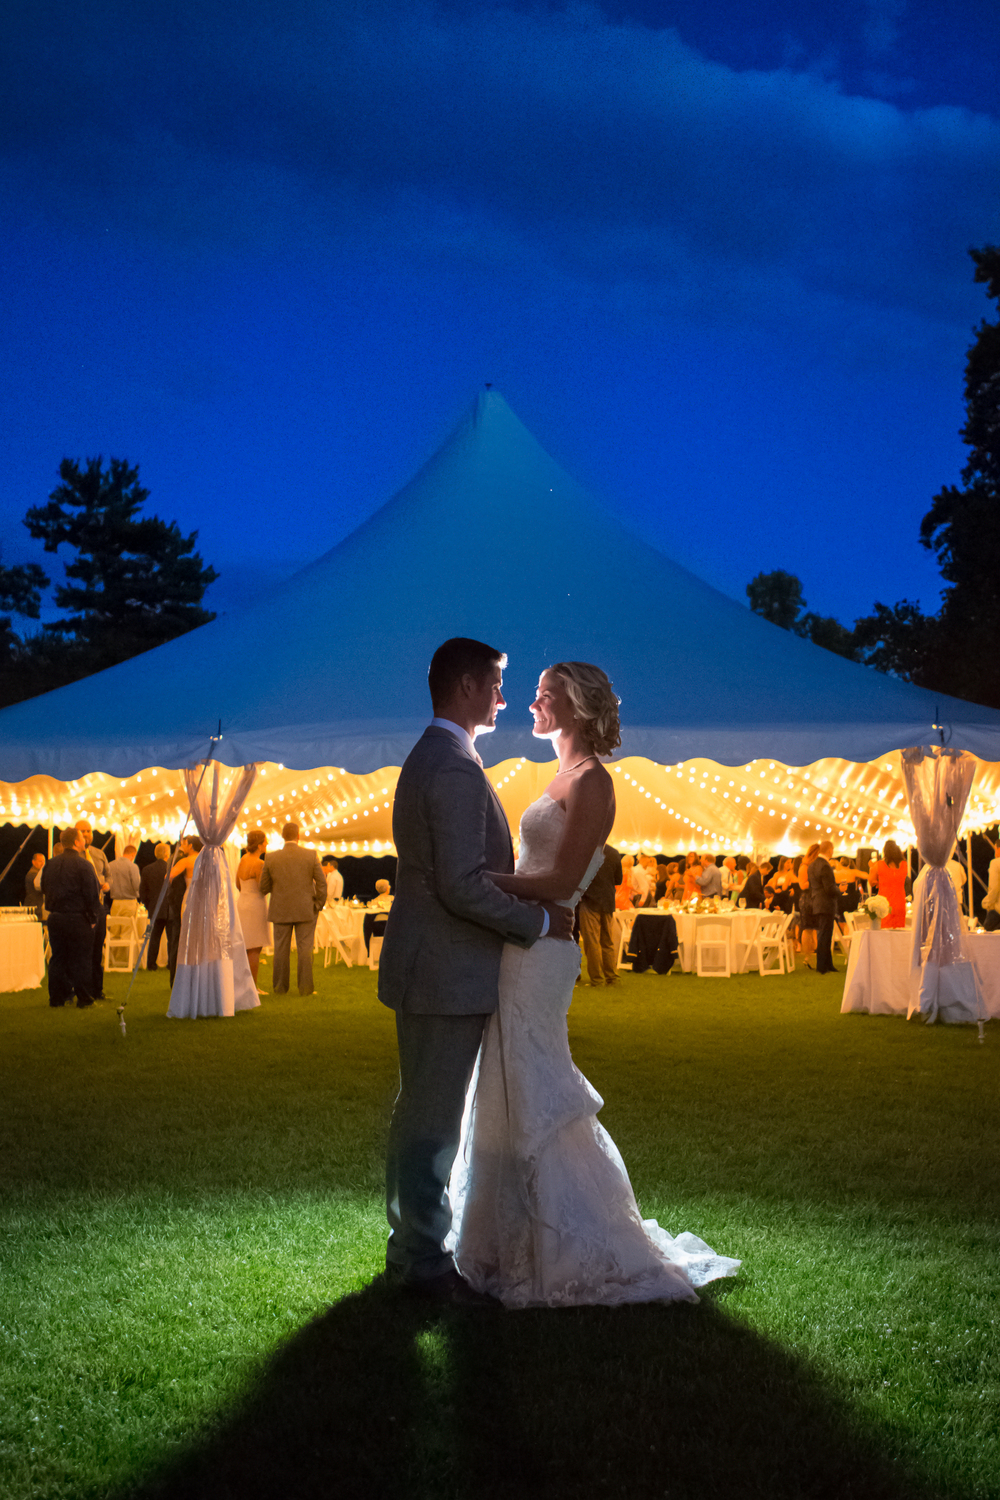 wedding night photo blue sky  romantic moraine farm bevrly ma .jpg